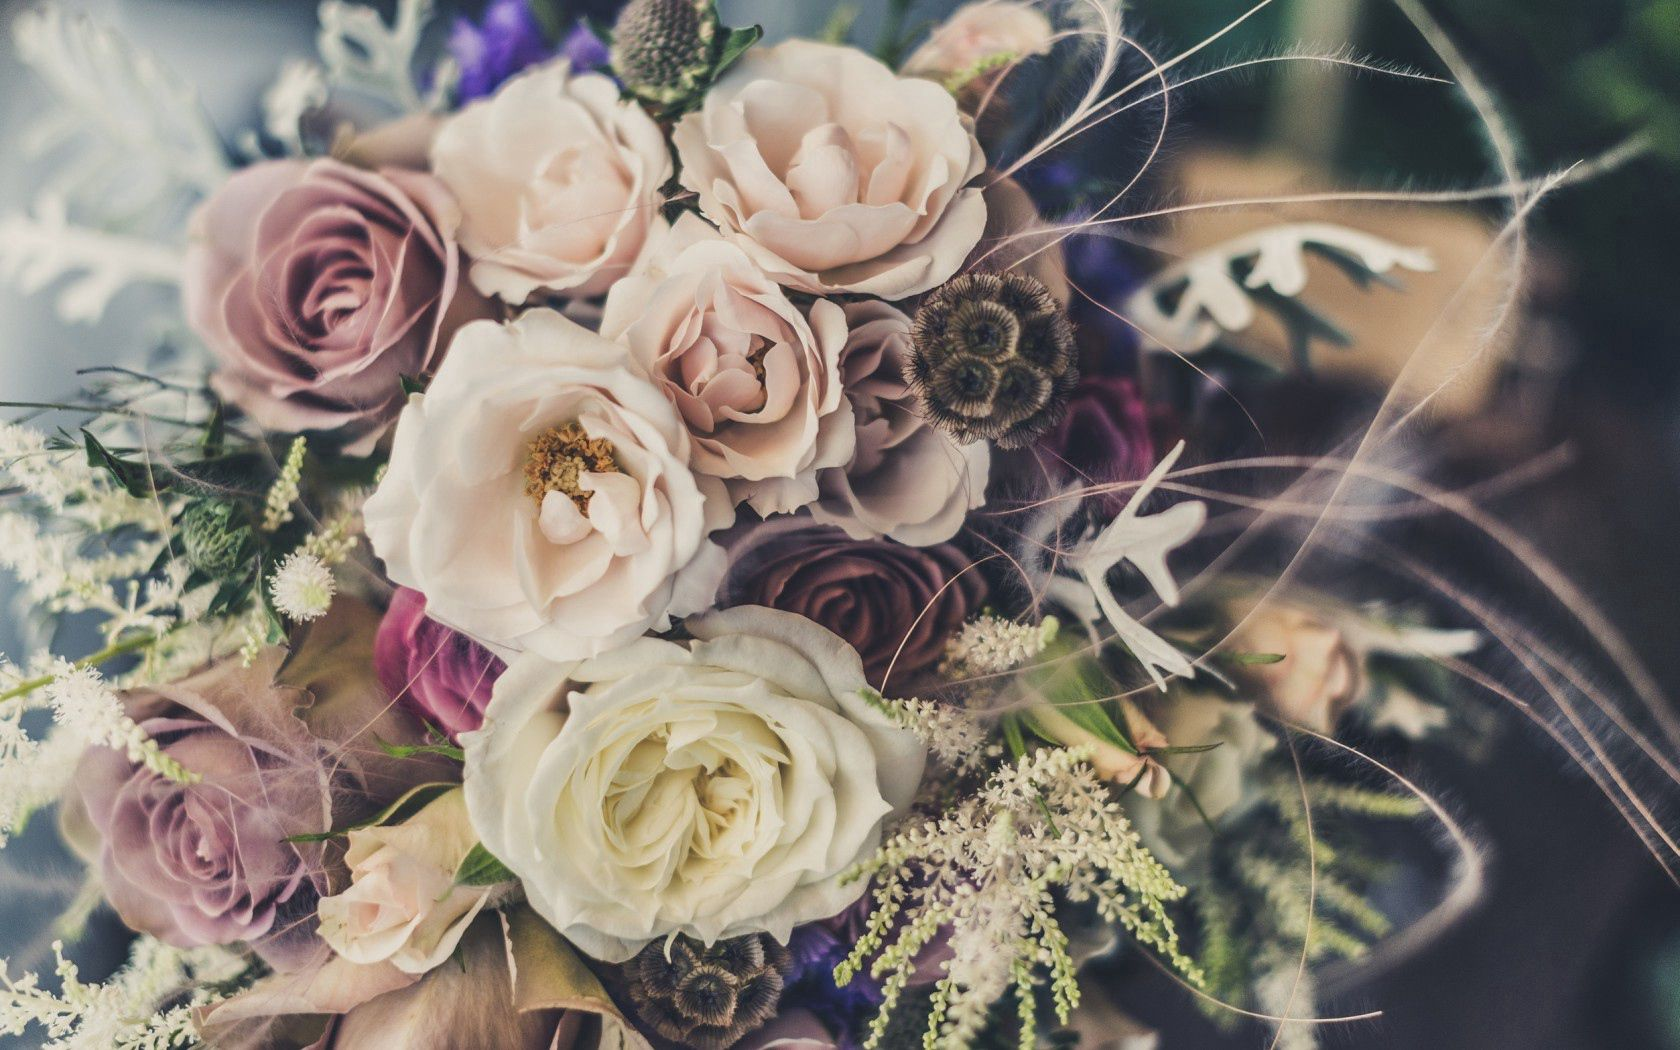 151861 download wallpaper Flowers, Roses, Bouquet, Decoration screensavers and pictures for free